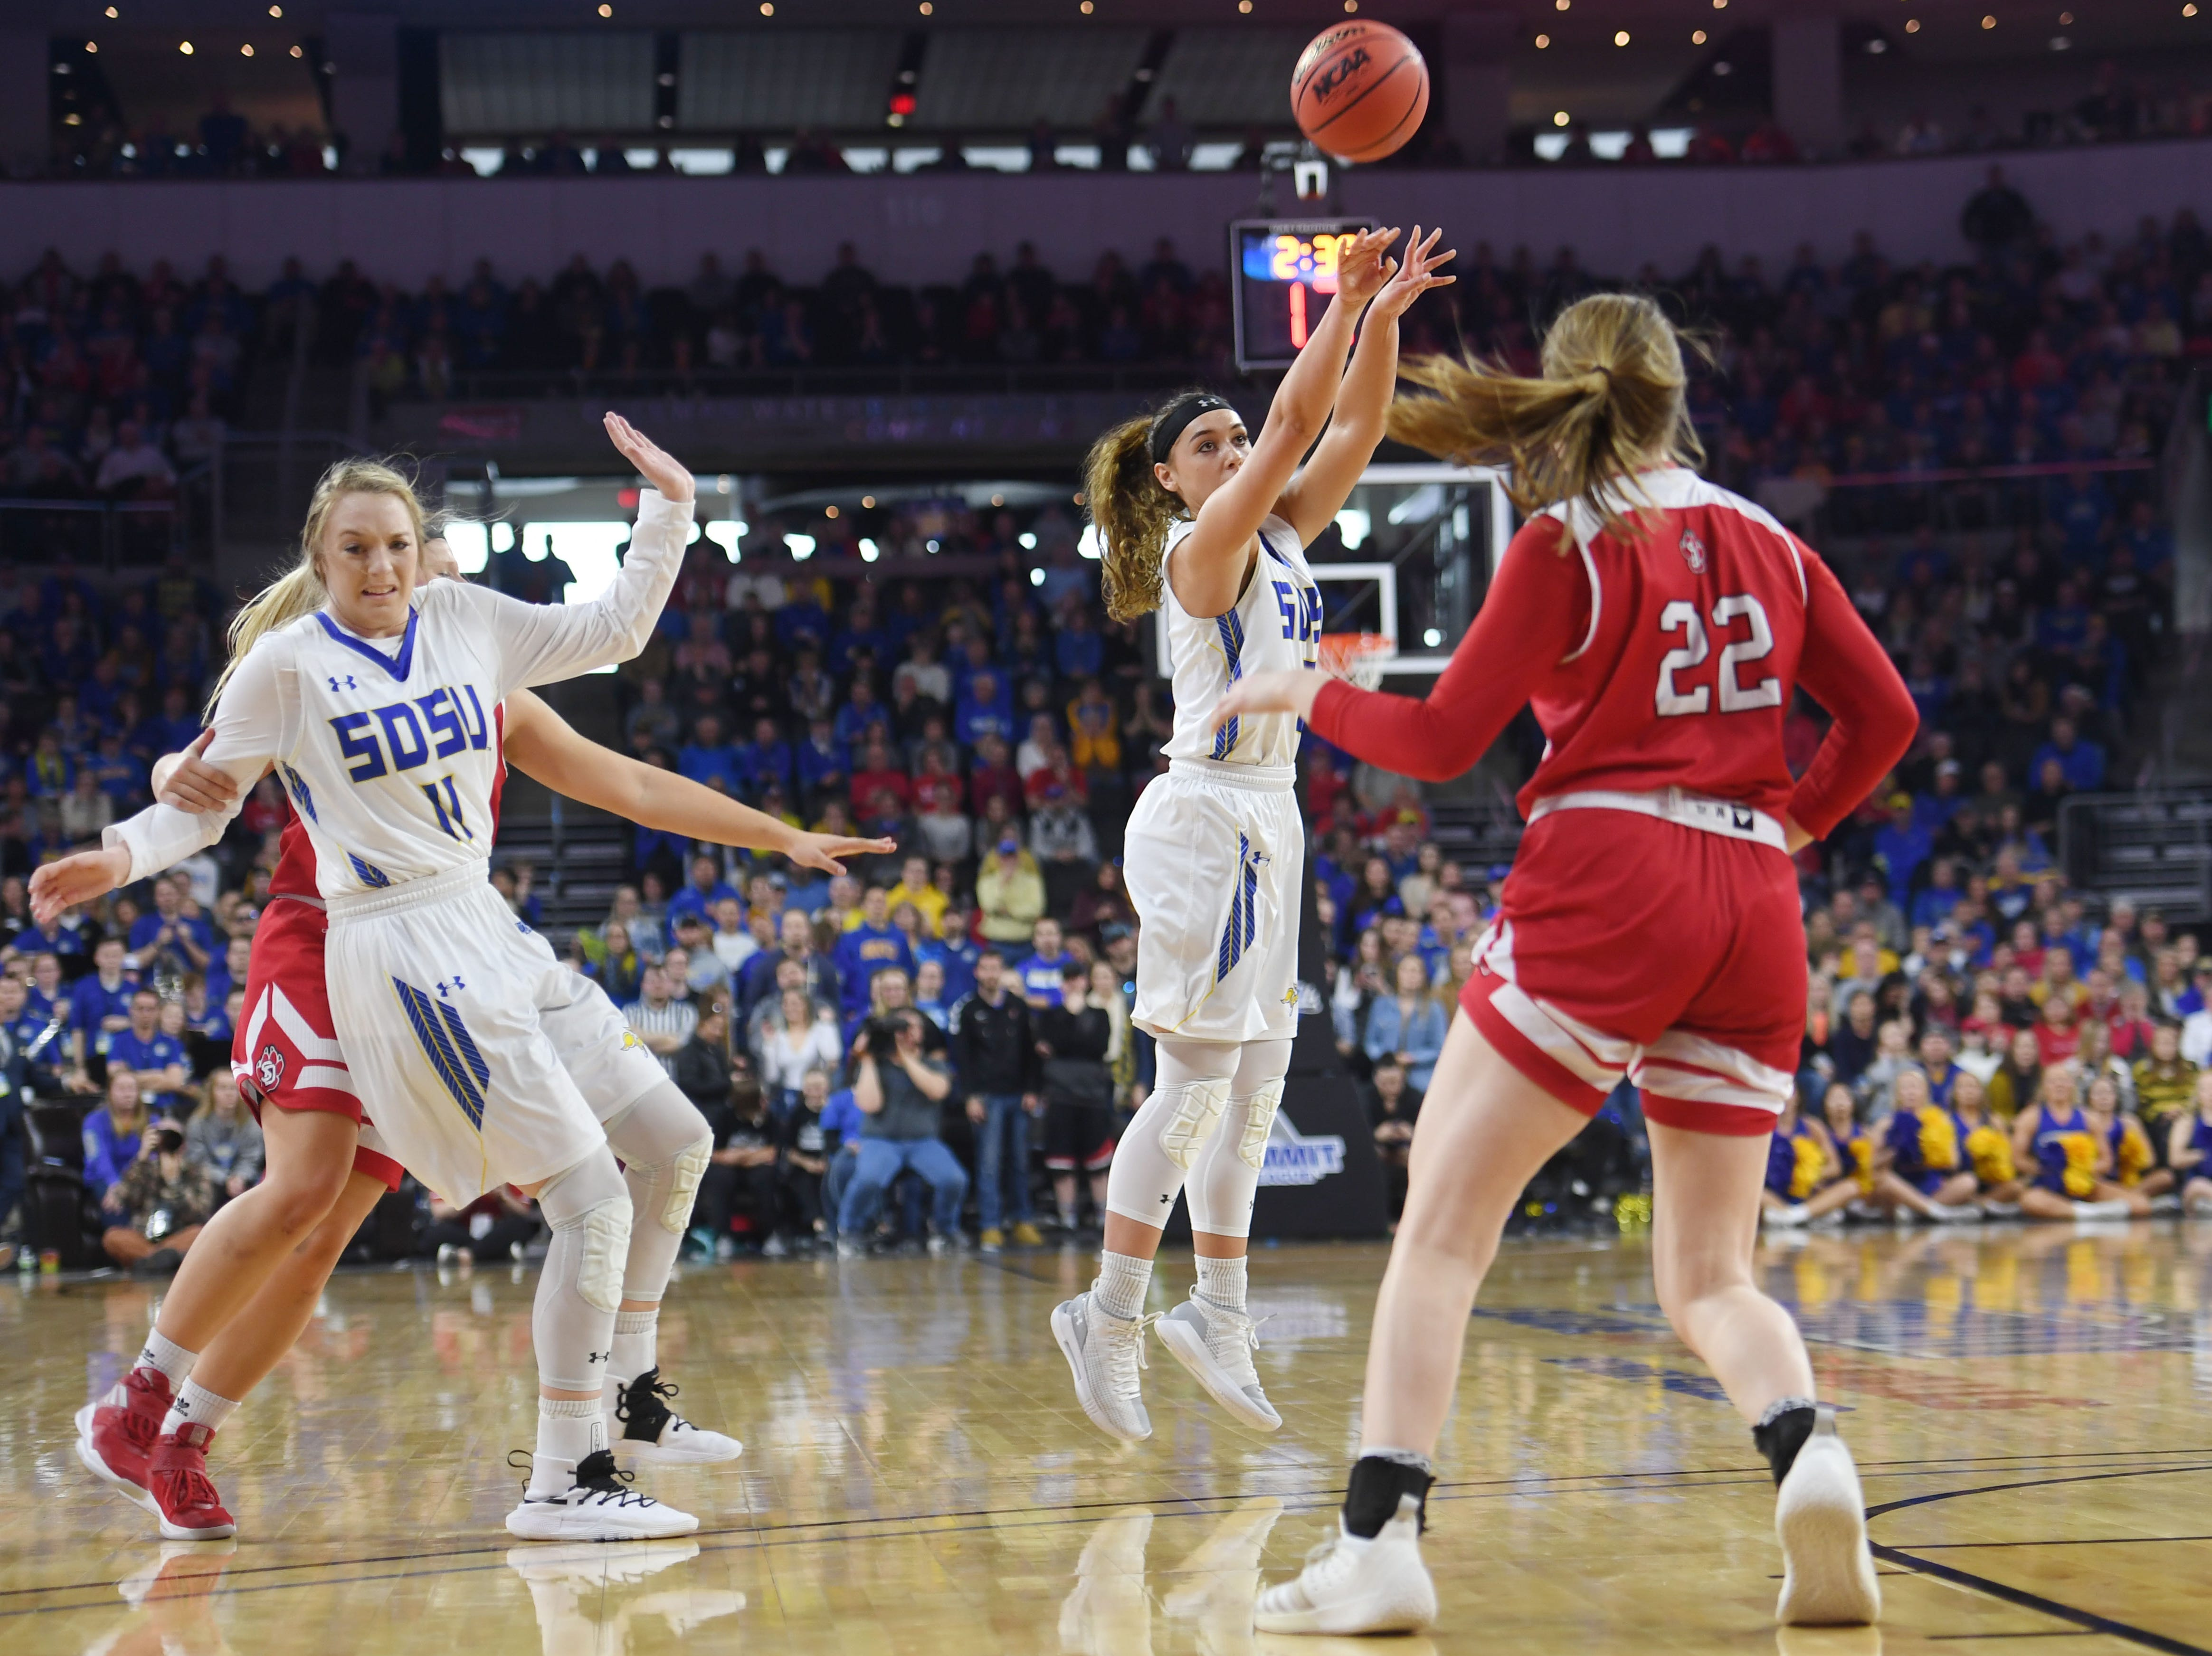 SDSU's Rylie Cascio Jensen goes against USD defense during the game Tuesday, March 12, in the Summit League women's championship at the Denny Sanford Premier Center in Sioux Falls.